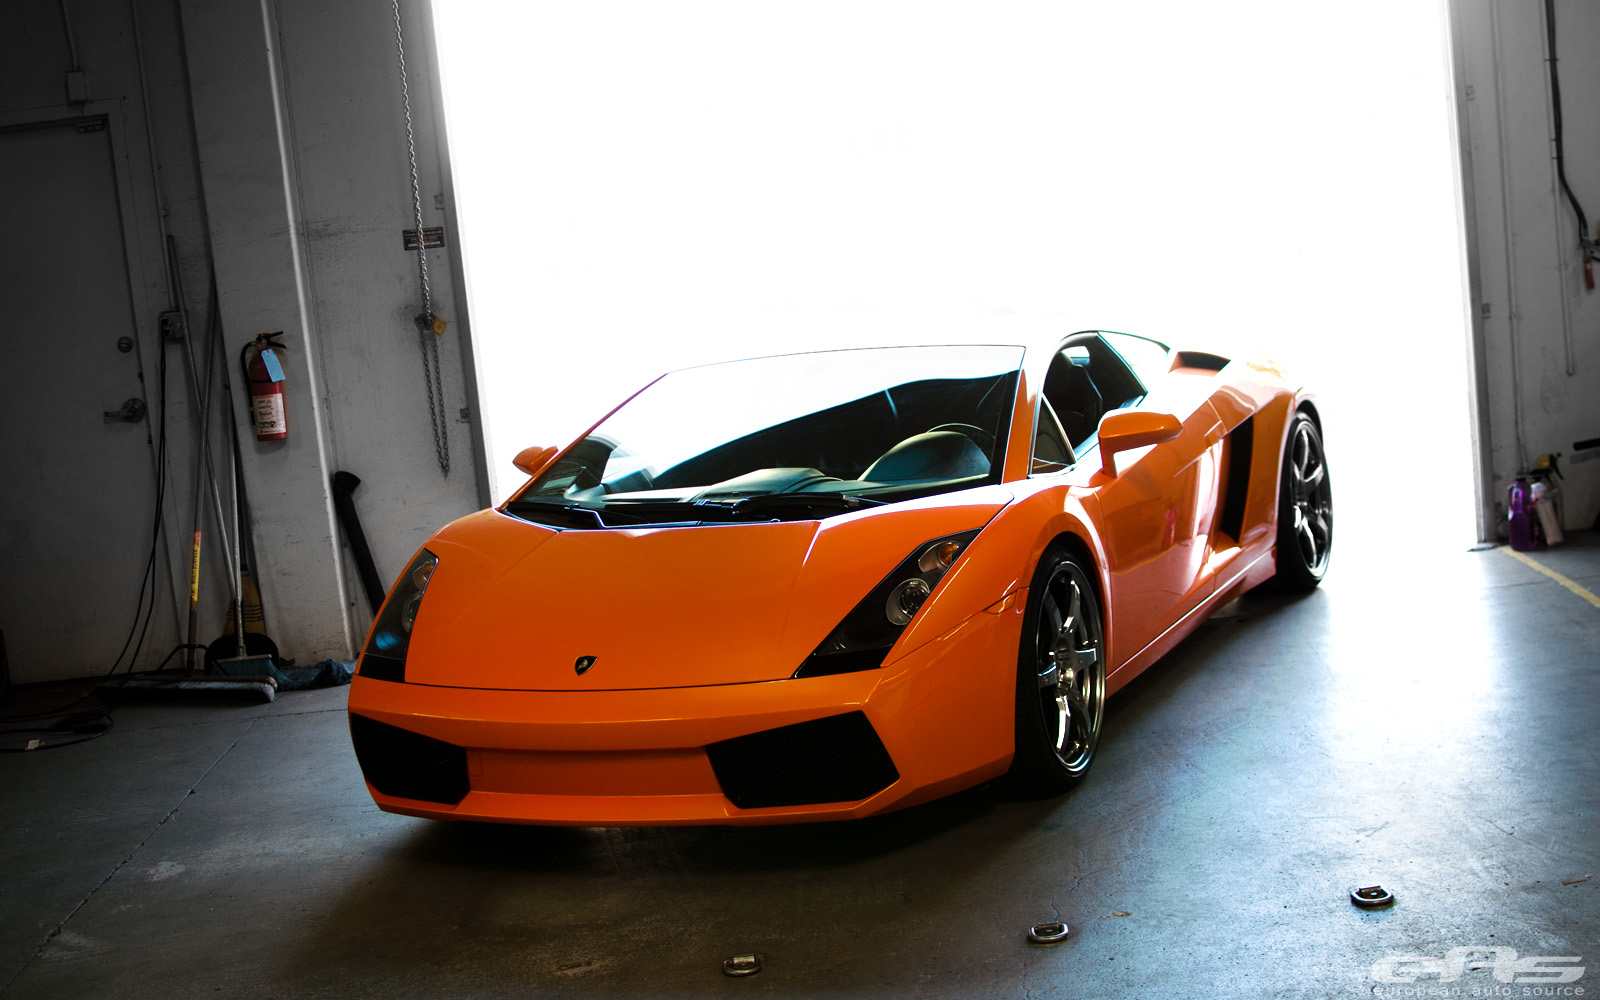 Lamborghini Gallardo in the Garage by eas